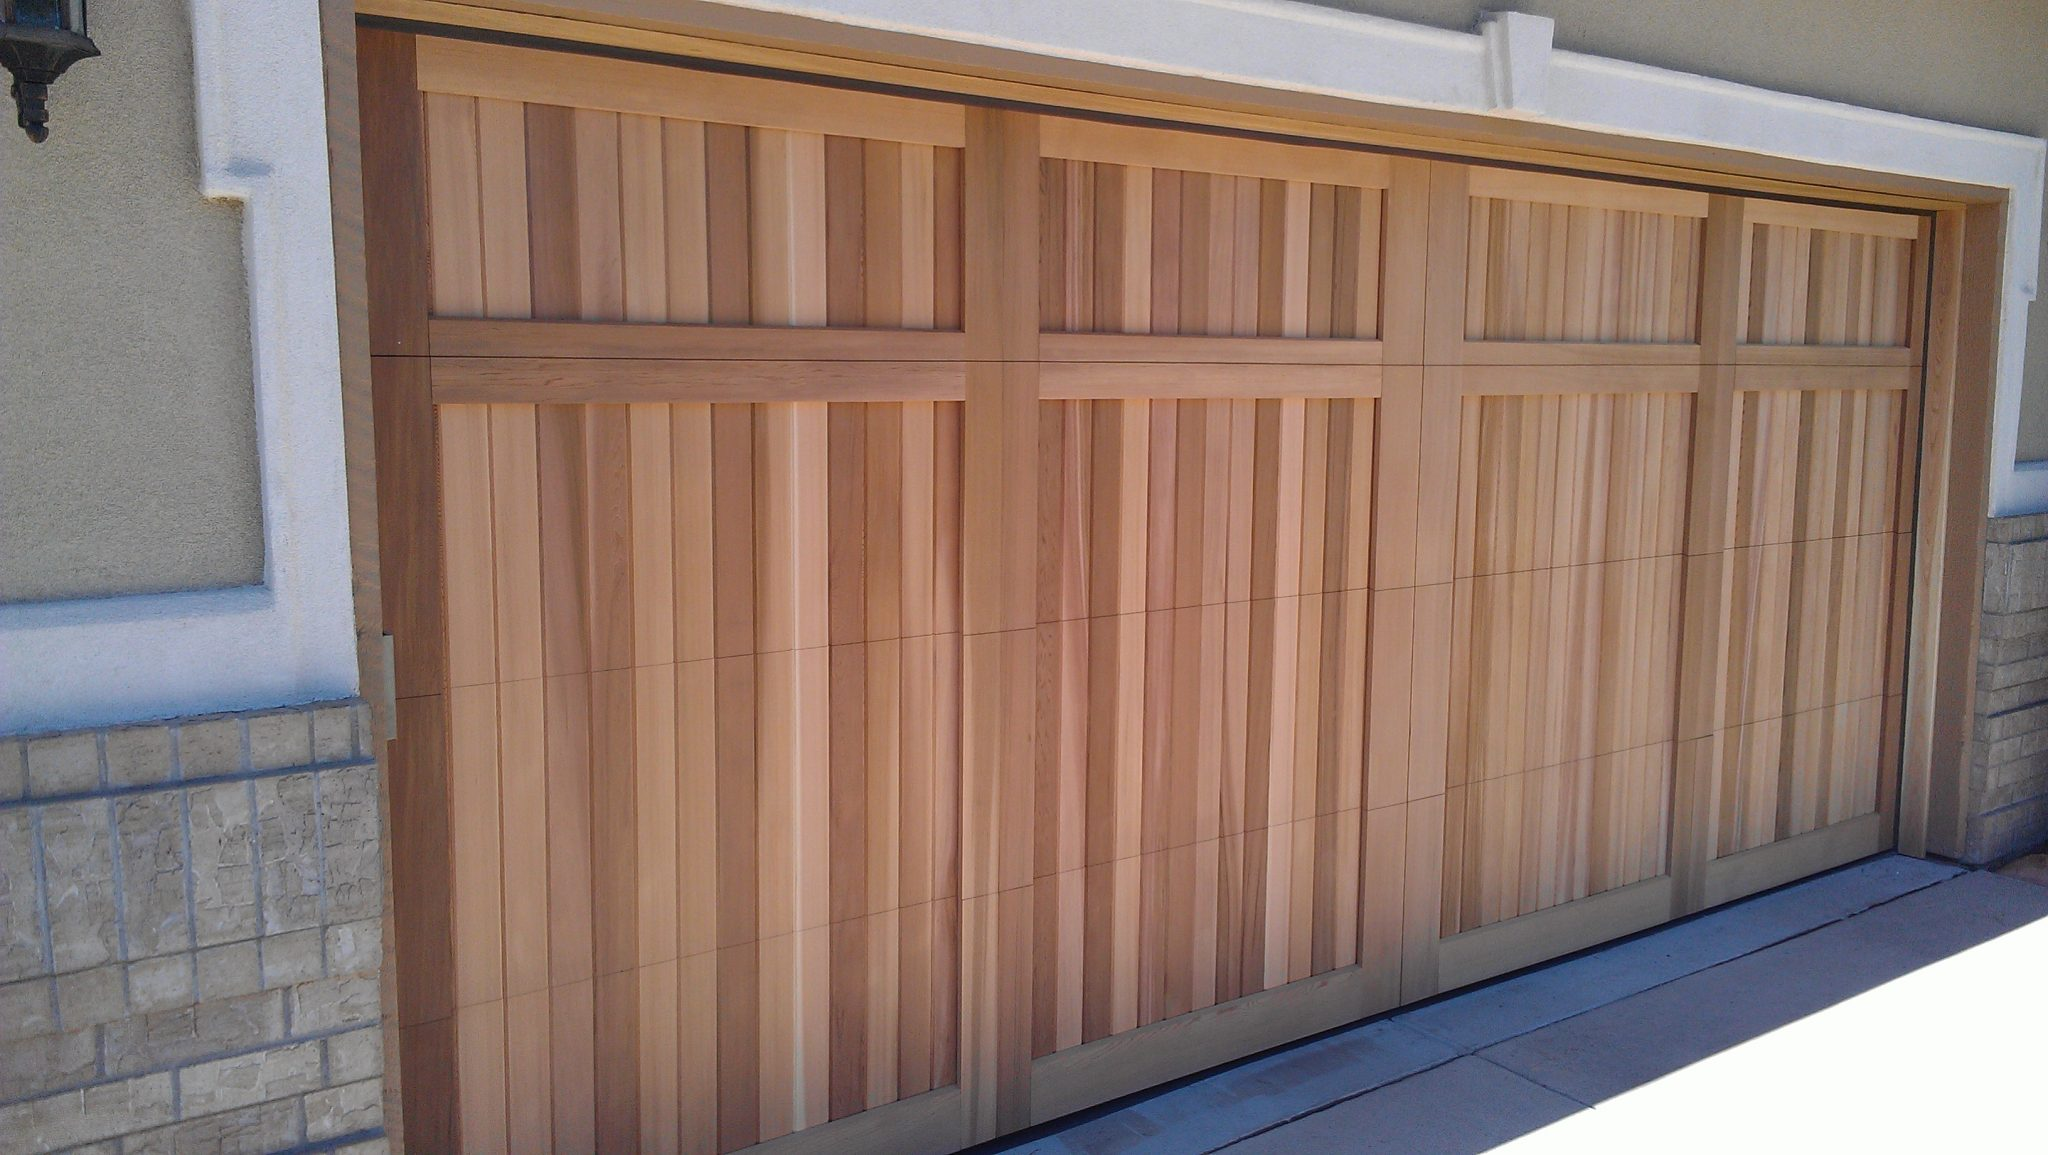 Wooden Garage Doors Professionally Installed by the team at Don's Garage Doors